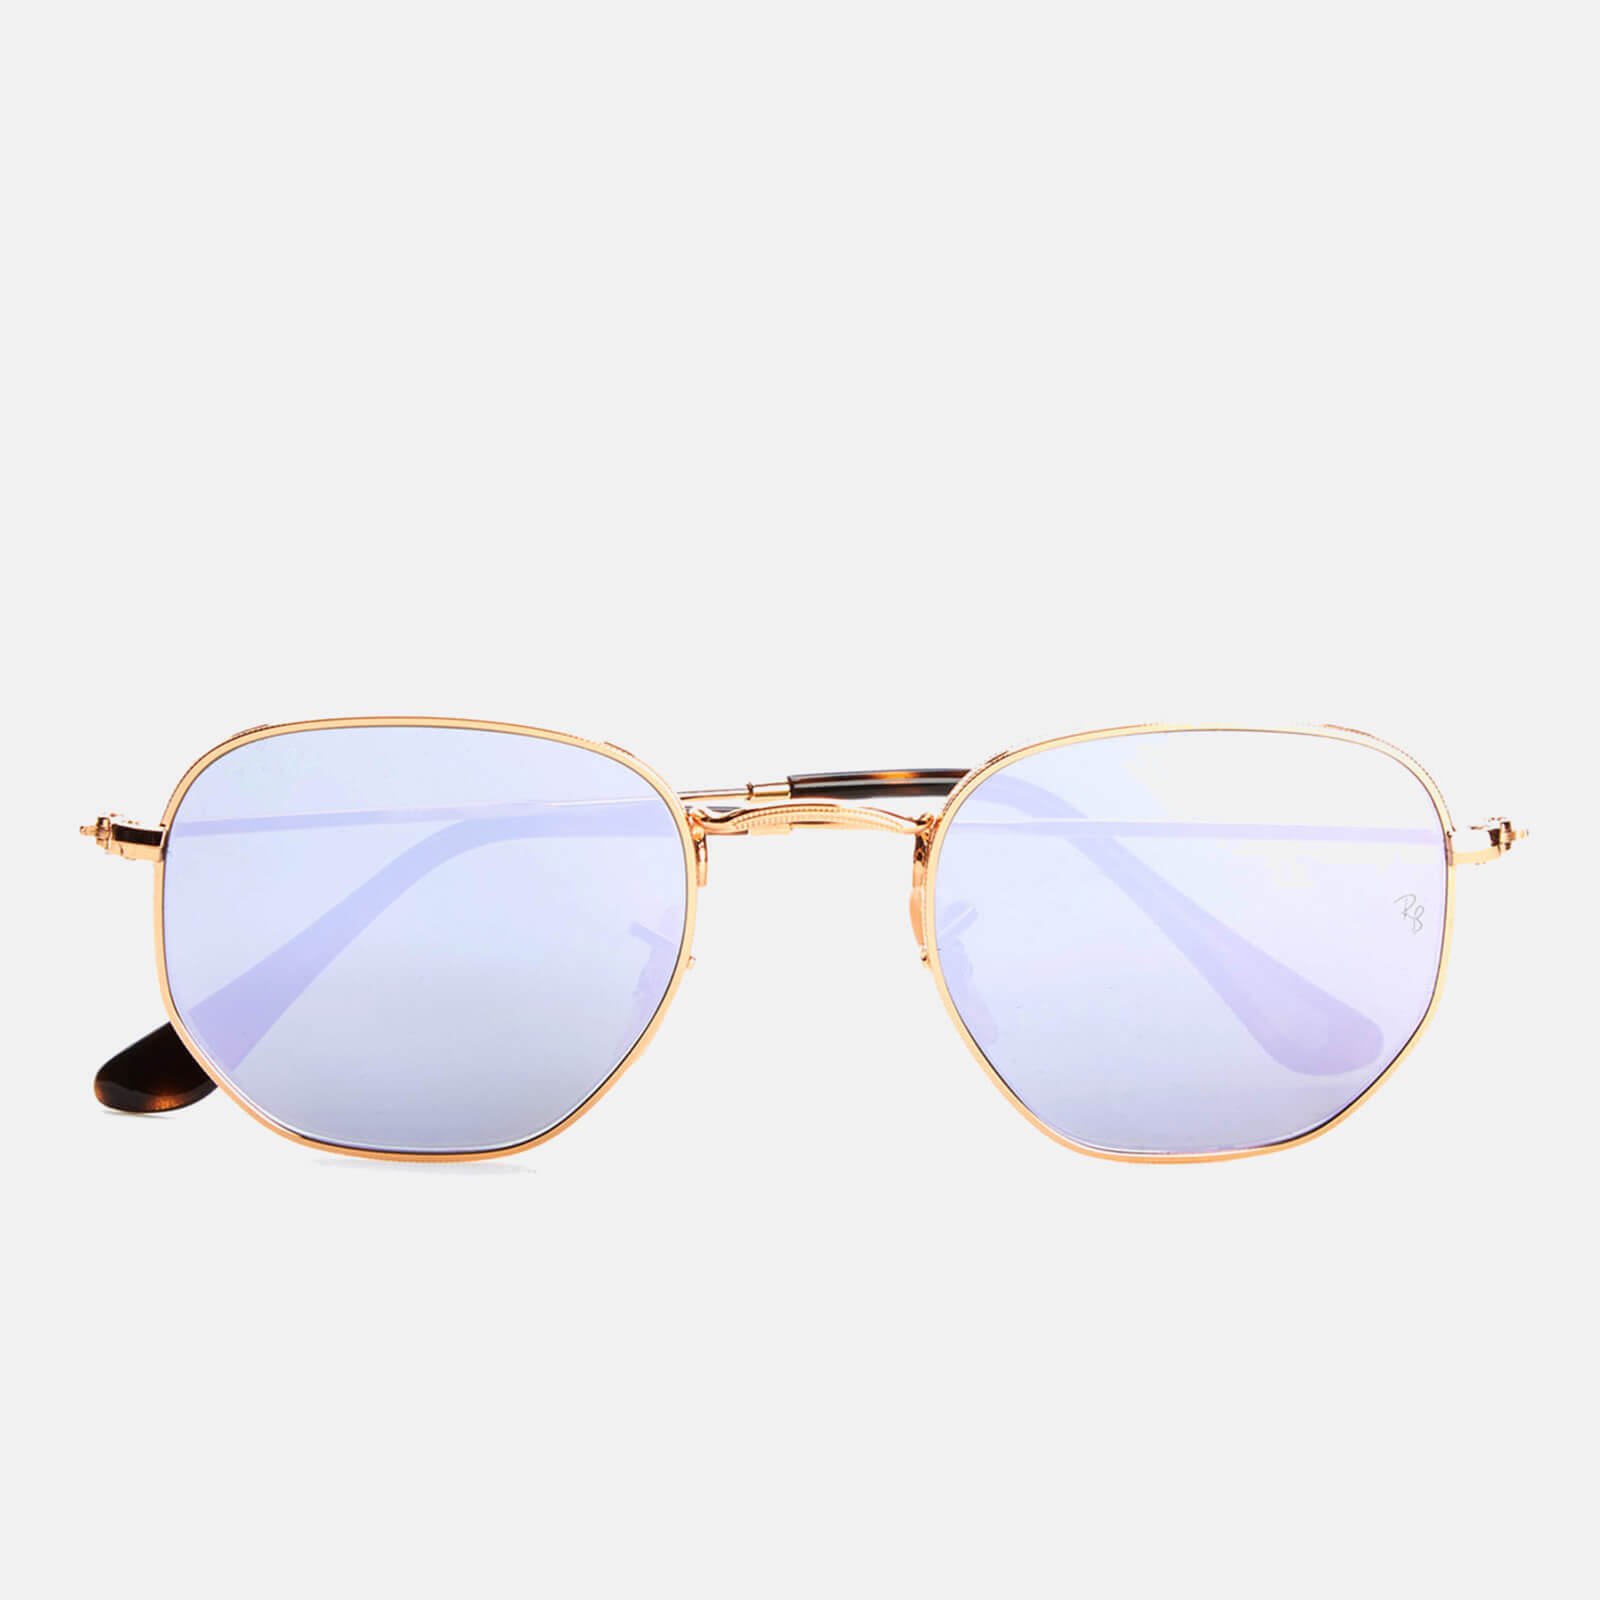 31f0c6ac5e6 Ray-Ban Hexagonal Metal Frame Sunglasses - Gold Wisteria Flash - Free UK  Delivery over £50